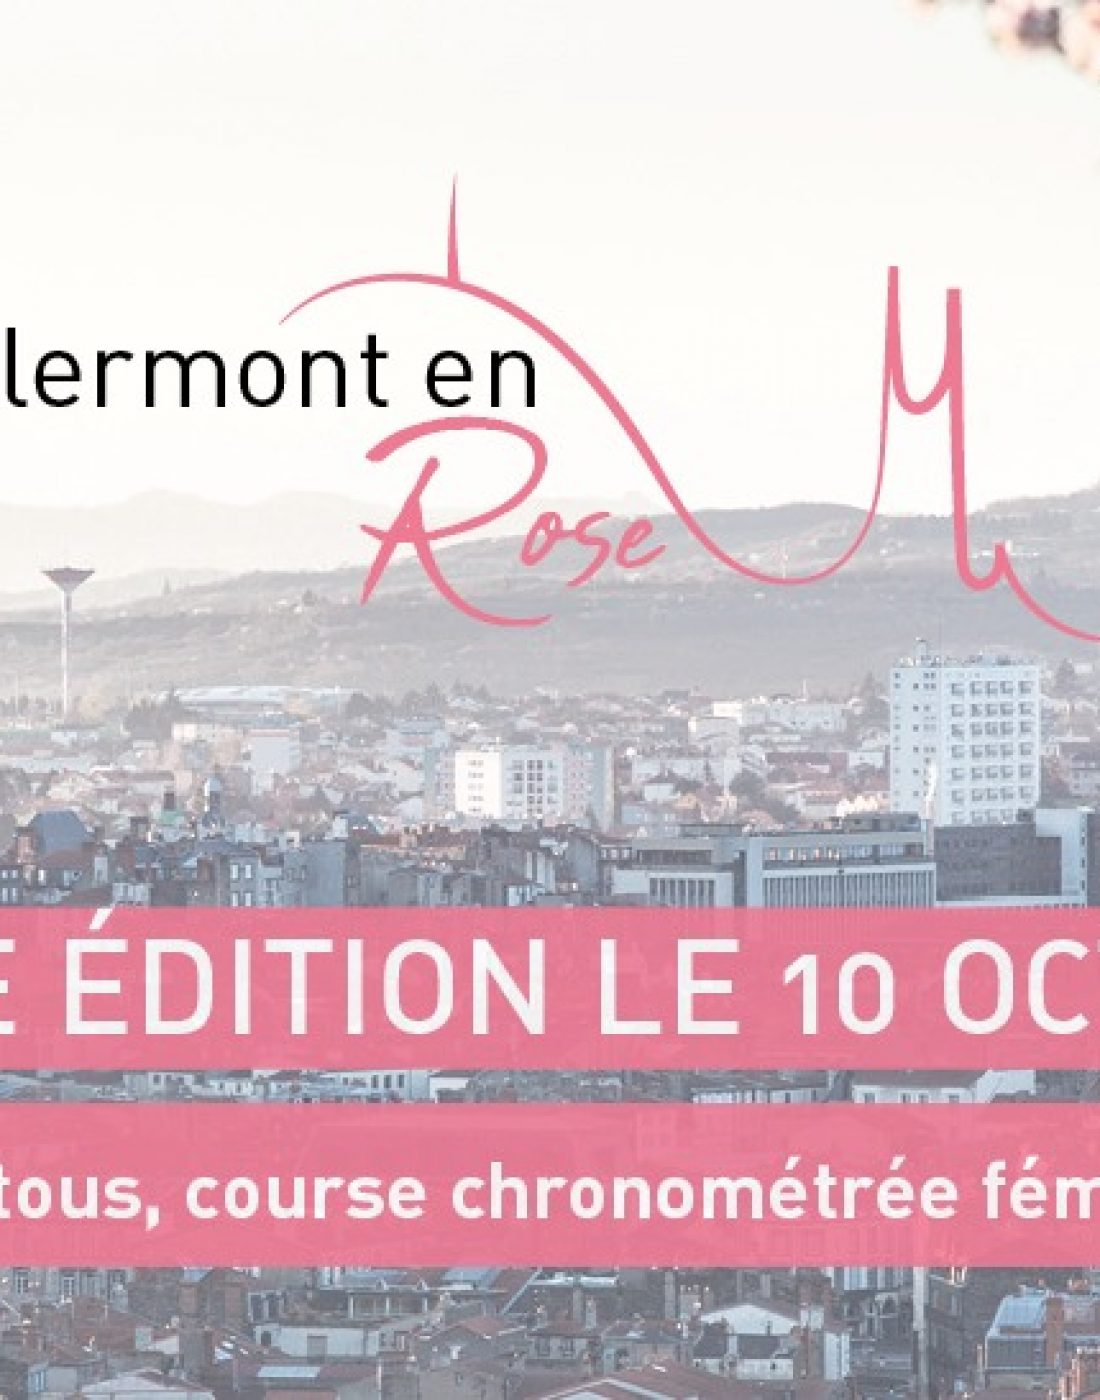 CLERMONT ROSE 2021